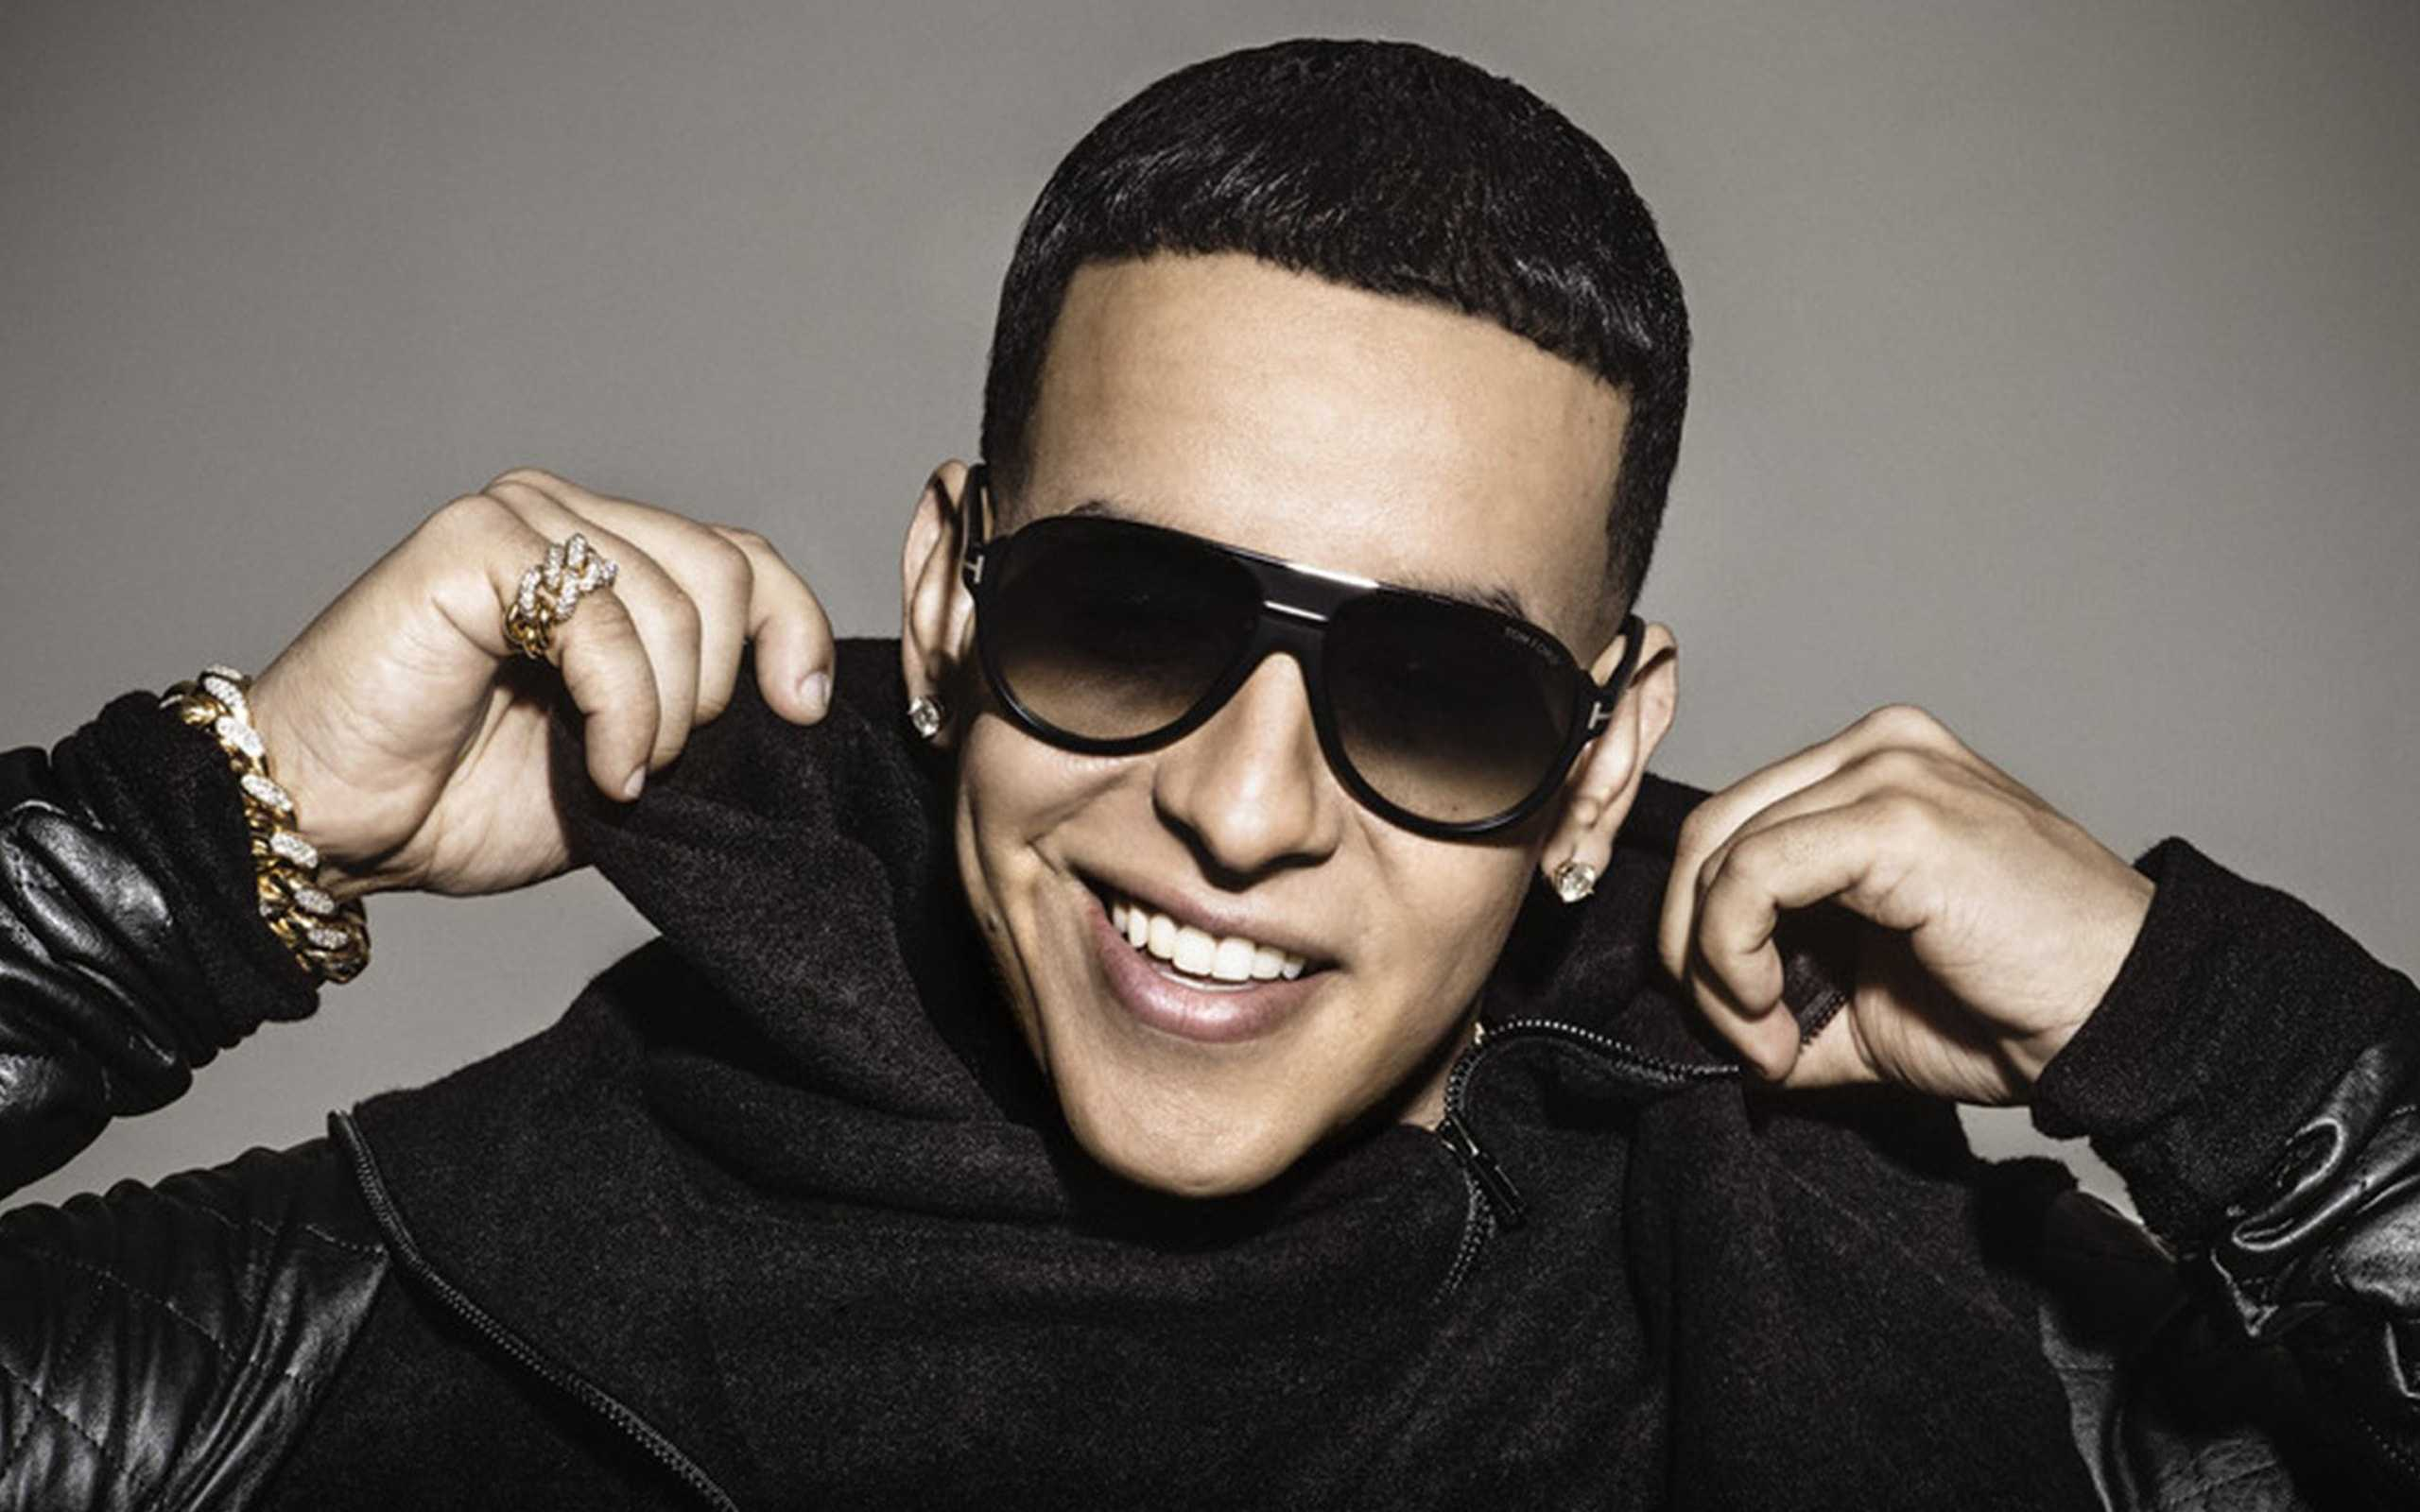 Daddy Yankee Wallpaper Desktop